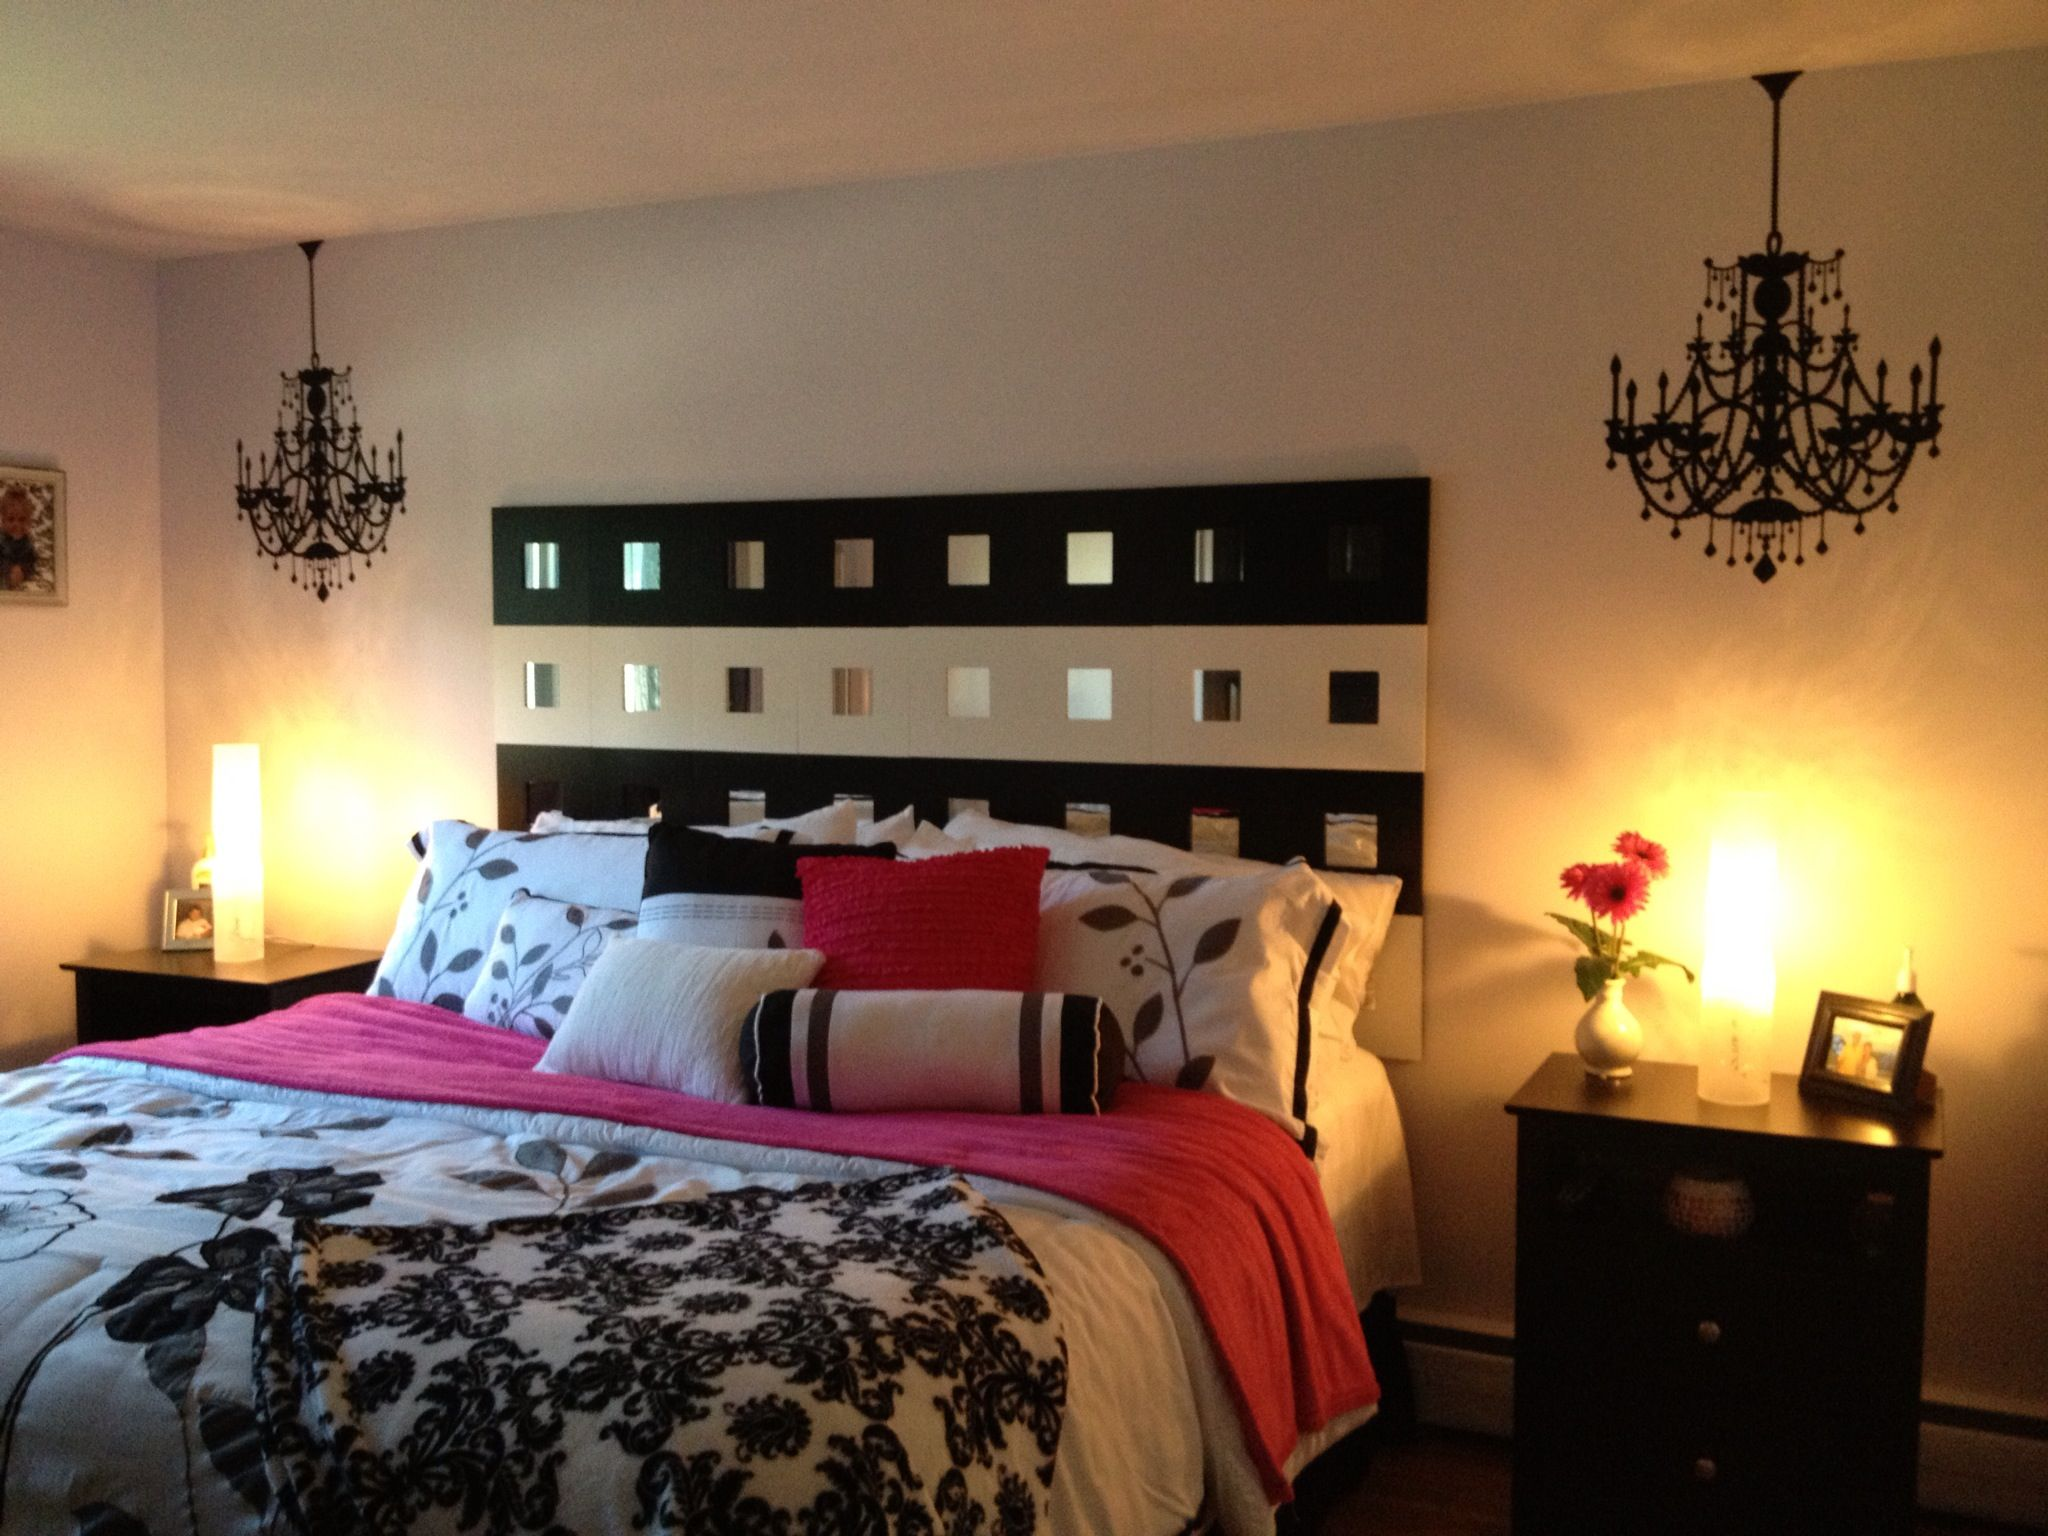 Black White And Pink Room Designs   White Is An Attractive Clean Shade That  Goes Well With Other Furniture Shades. Part 76